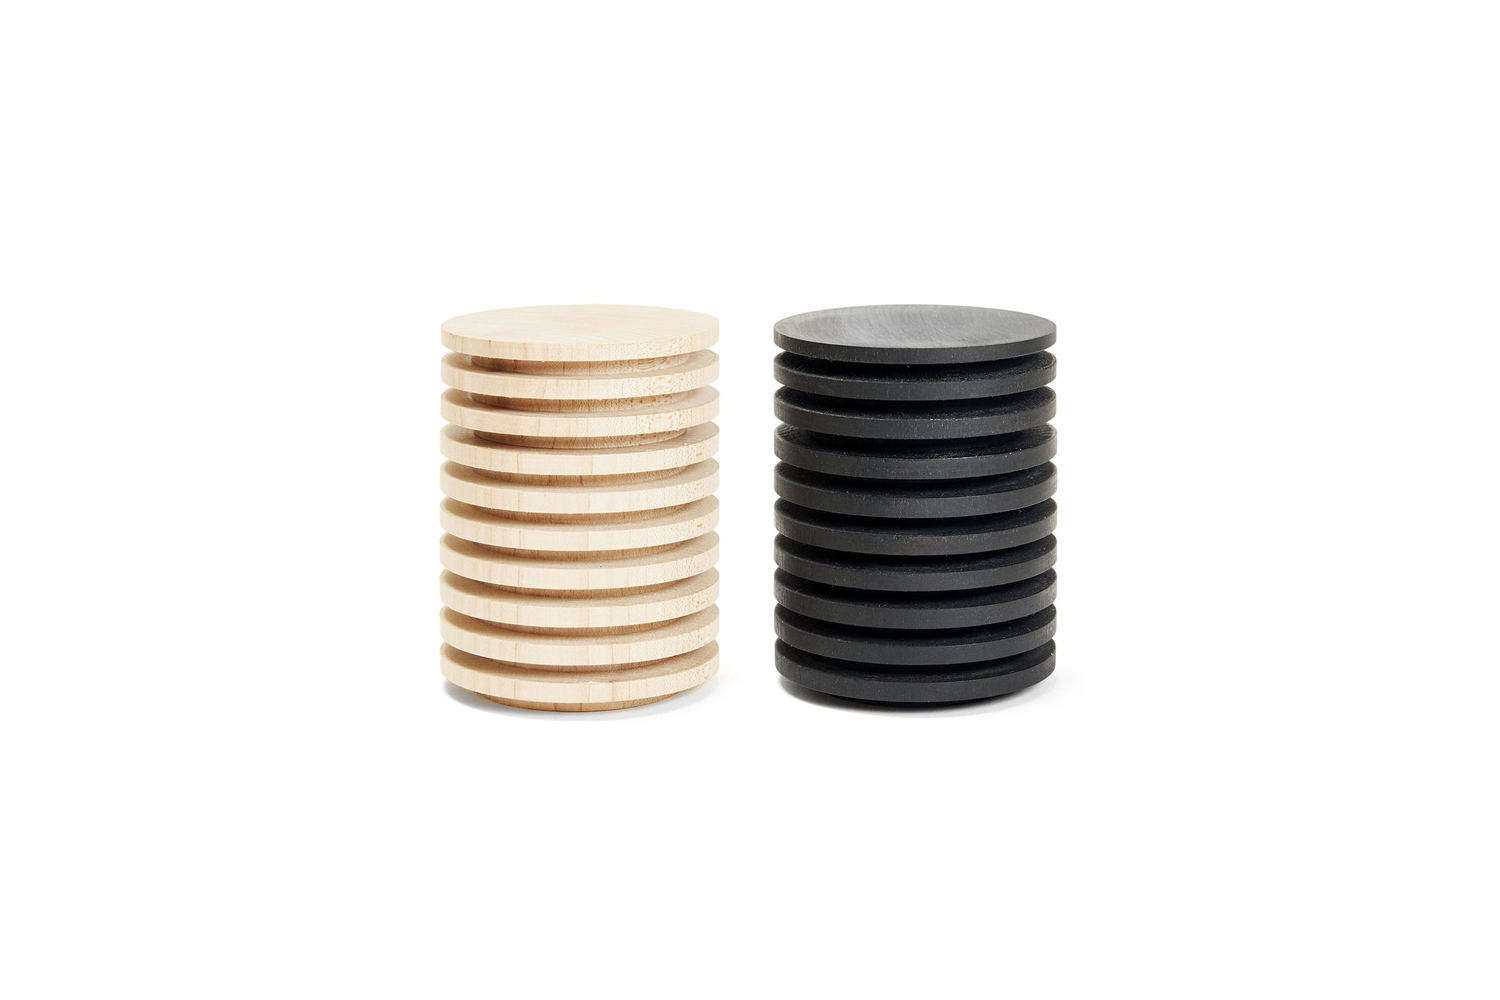 Rib Containers by Pat Kim at Tetra